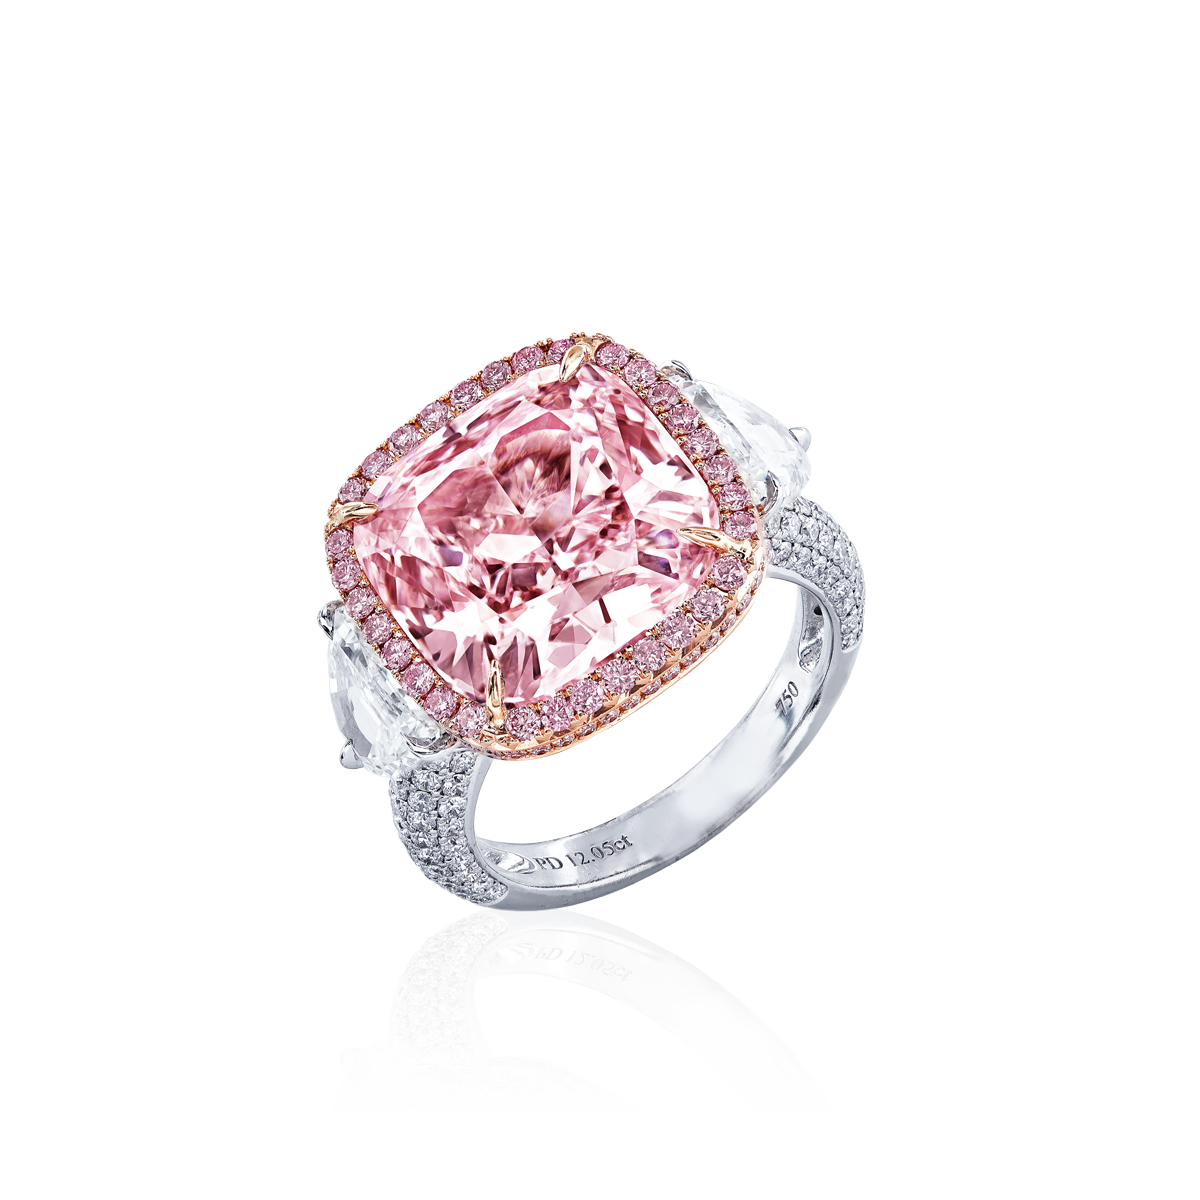 GIA 12.05克拉粉鑽鑽戒